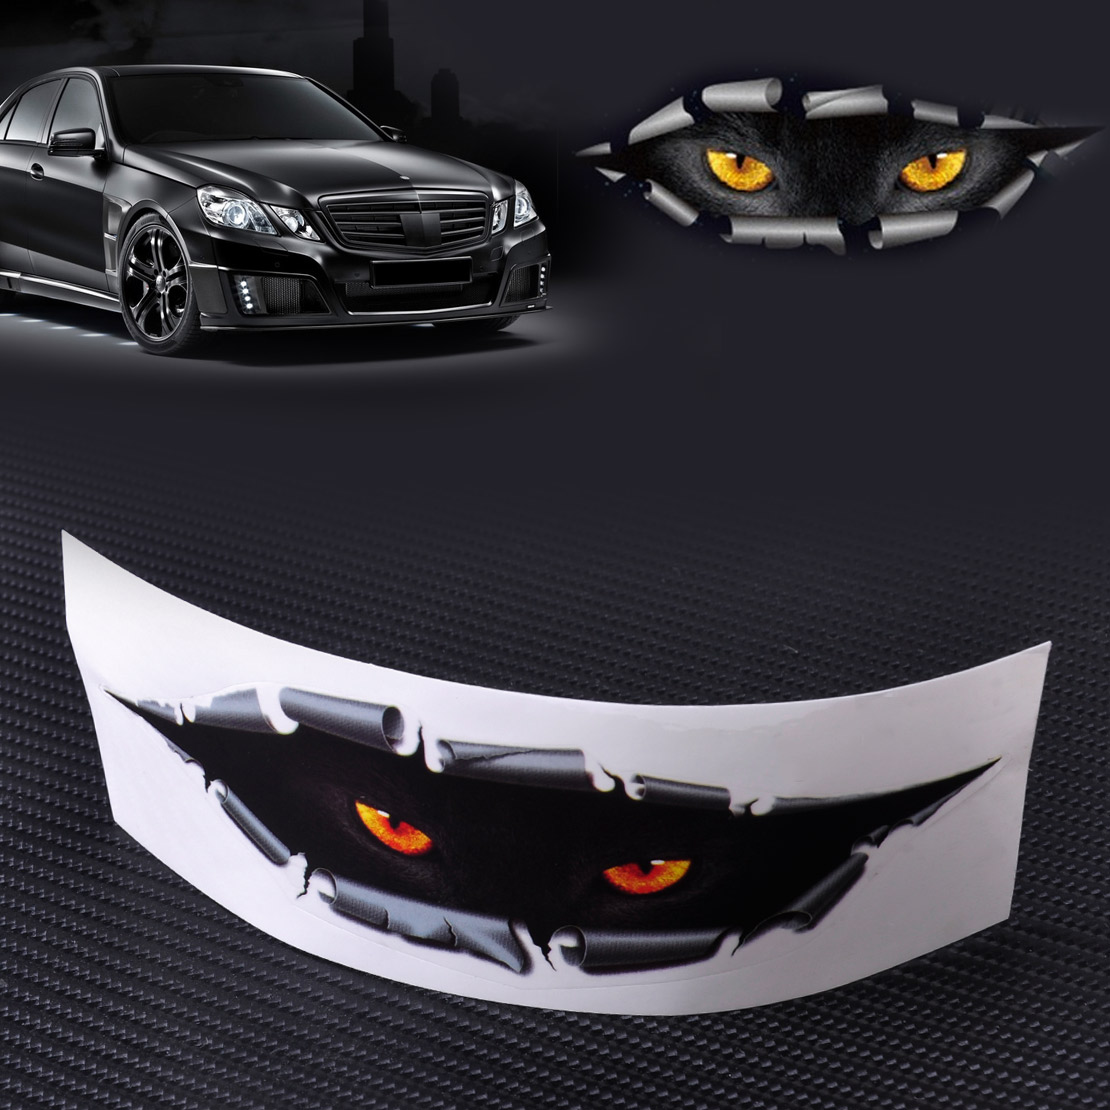 Auto Window Decal PromotionShop For Promotional Auto Window Decal - Promotional car window decals